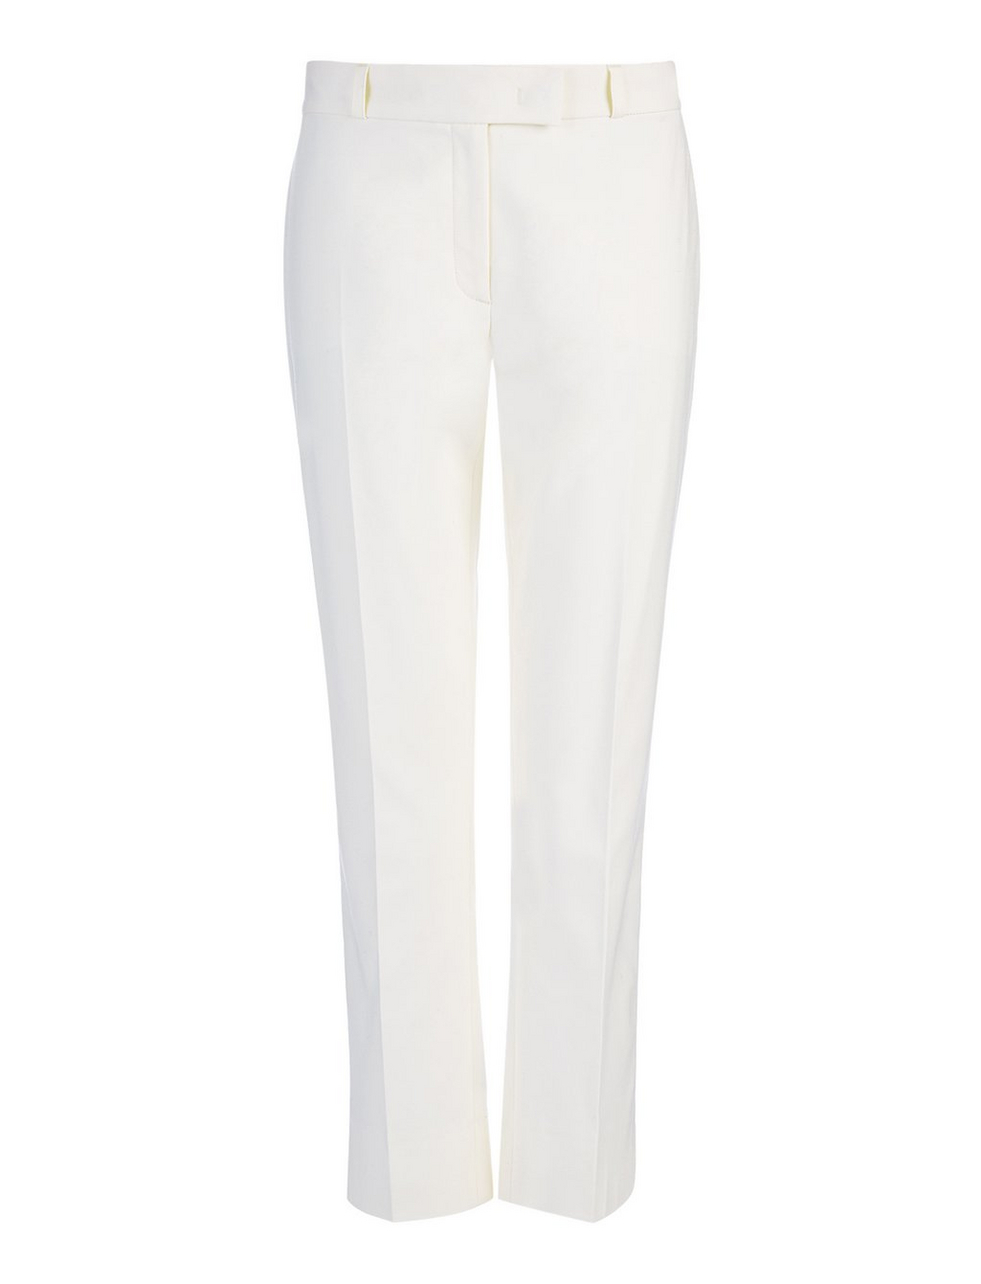 New Cotton Compact Bing Court Trouser In Off White - length: standard; pattern: plain; waist: mid/regular rise; predominant colour: white; fibres: cotton - stretch; texture group: cotton feel fabrics; fit: straight leg; pattern type: fabric; style: standard; occasions: creative work; season: s/s 2016; wardrobe: basic